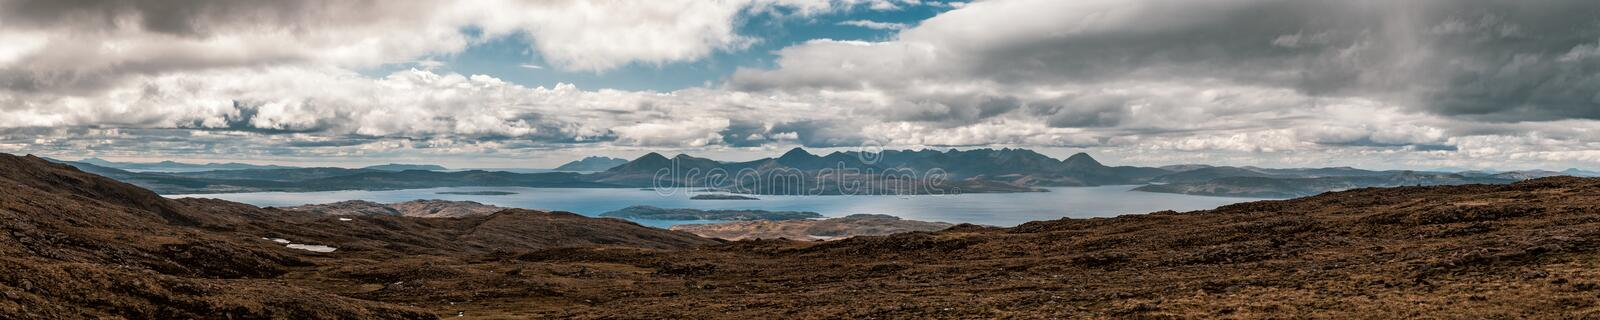 View of Isle of Skye from Bealach n Ba in Scotland. Panoramic view across Inner Sound of Raasay towards the Isle of Skye from the 626 metre high viewpoint at royalty free stock image